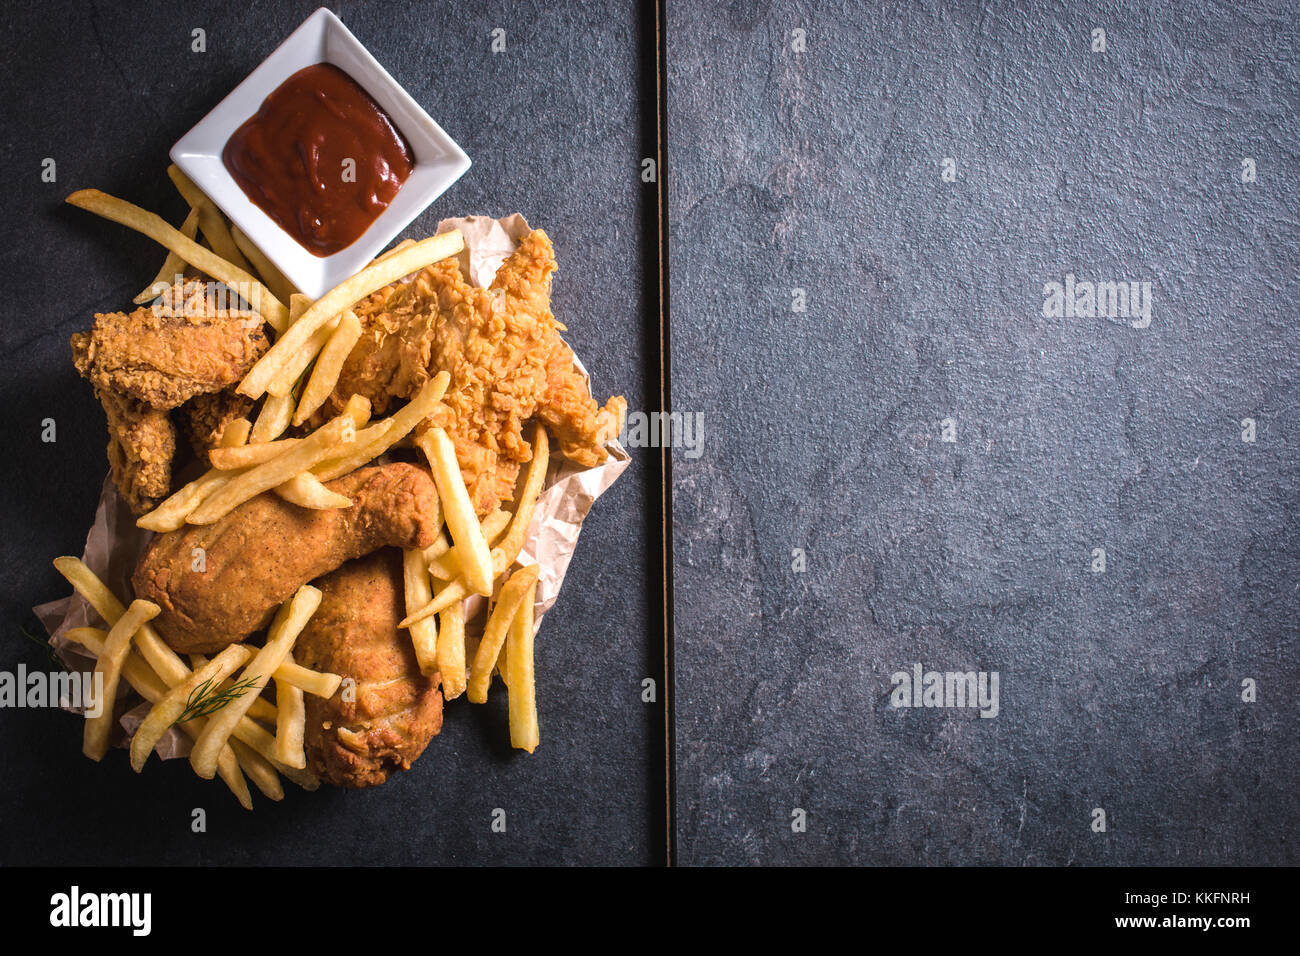 Fried chicken meat and French fries from above,blank space on the right side - Stock Image